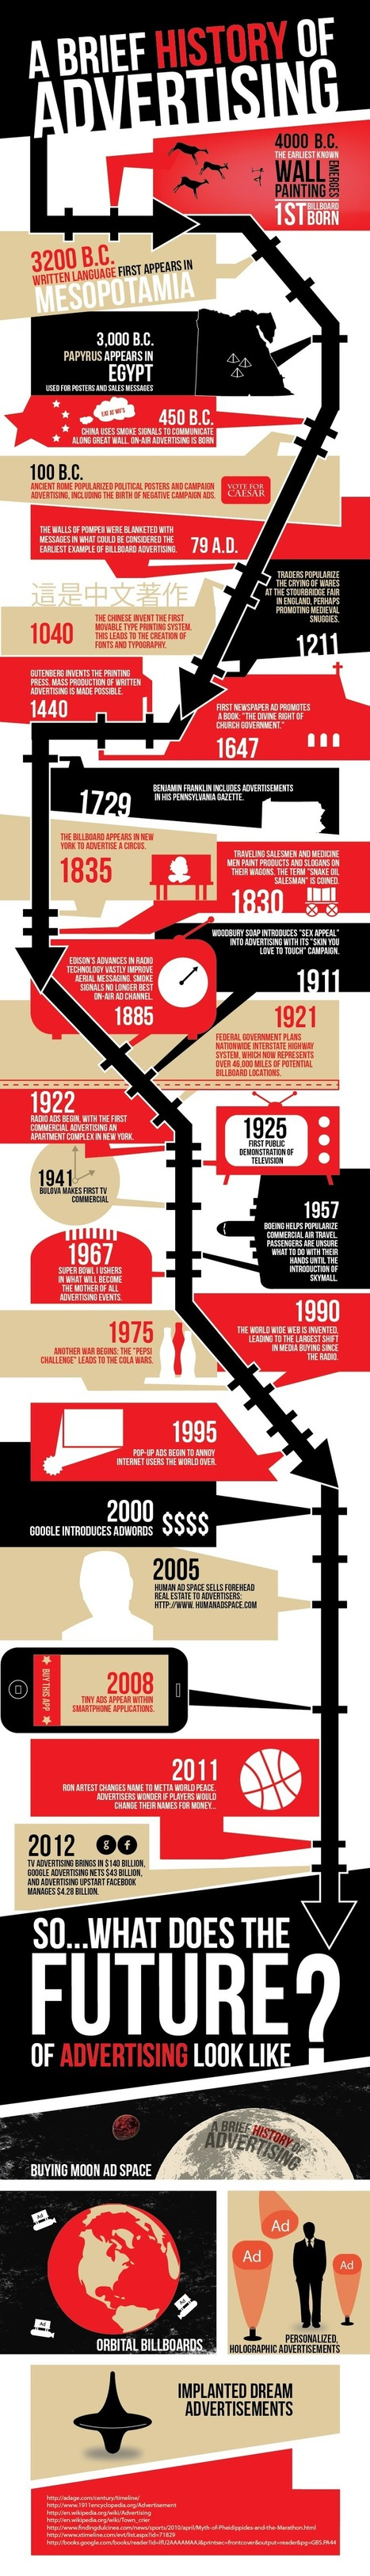 Advertising: A Brief History [Infographic] | IMAGE pub photo media cinema mode | Scoop.it